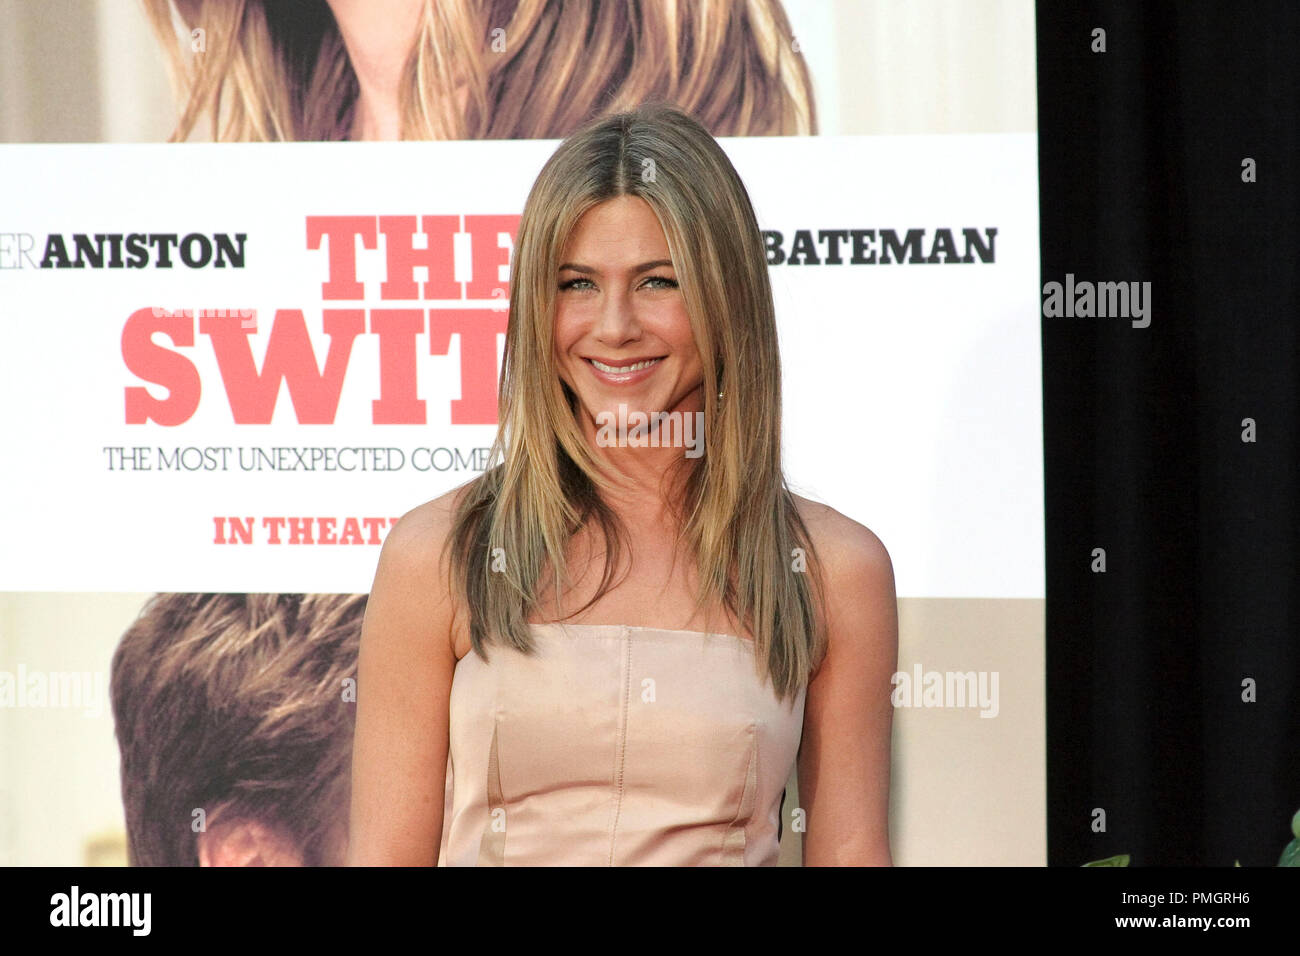 Jennifer Aniston at the World Premiere of Miramax Films and Mandate Pictures 'The Switch'. Arrivals held at The Arclight Theatre in Hollywood, CA. August 16, 2010. Photo by: Richard Chavez / PictureLux File Reference # 30417_058RAC   For Editorial Use Only -  All Rights Reserved - Stock Image